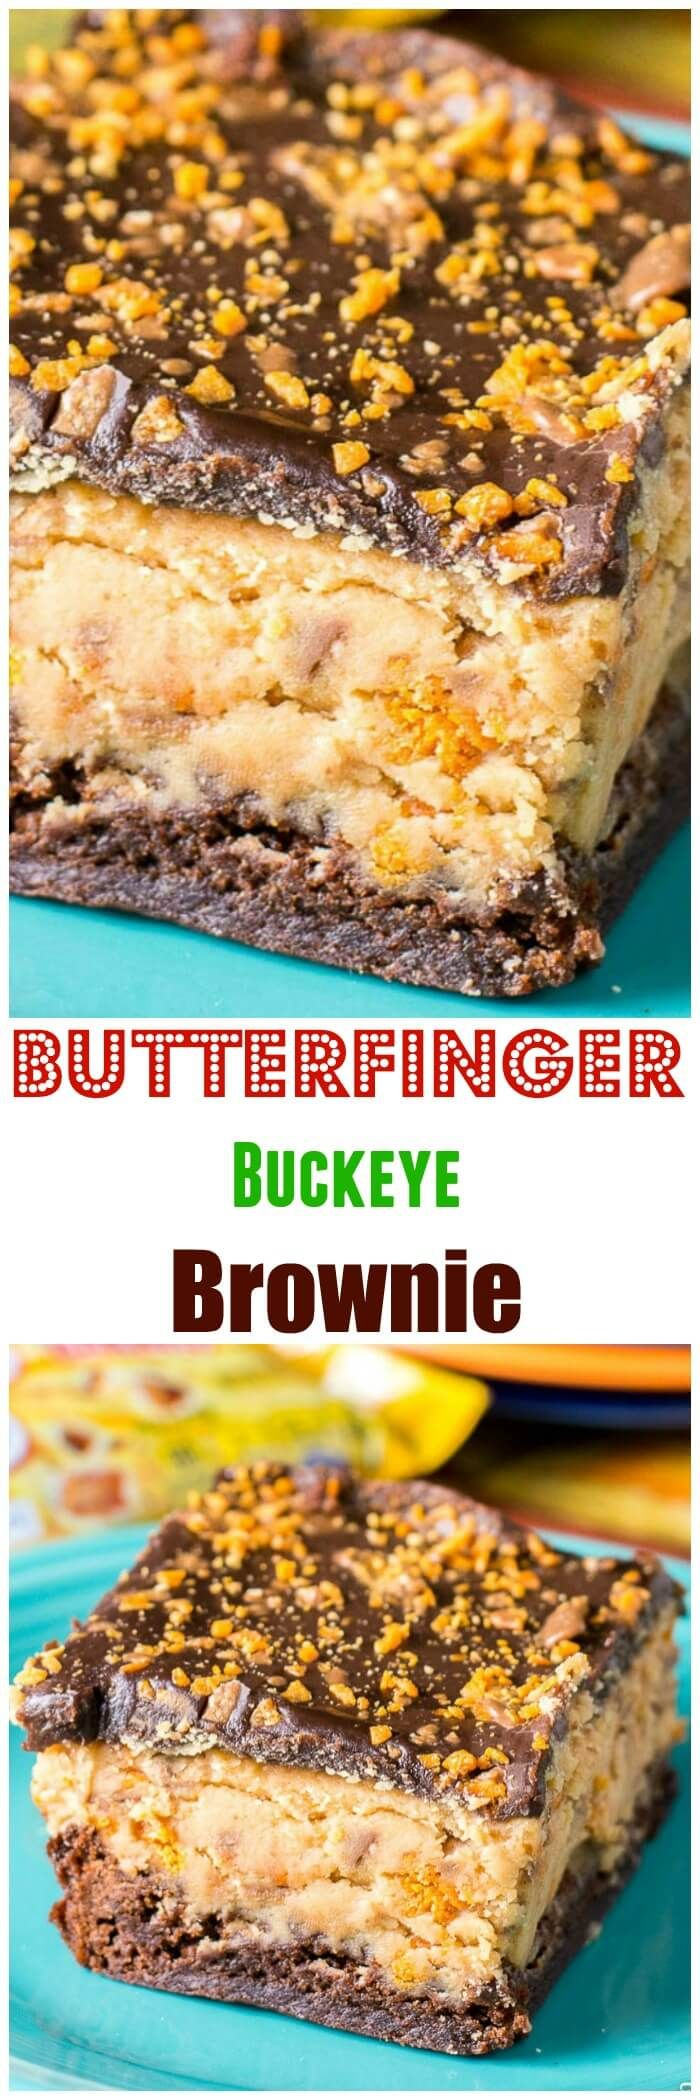 Butterfinger Buckeye Brownies are topped with peanut butter and a chocolate ganache with Butterfinger bits! via @flavormosaic